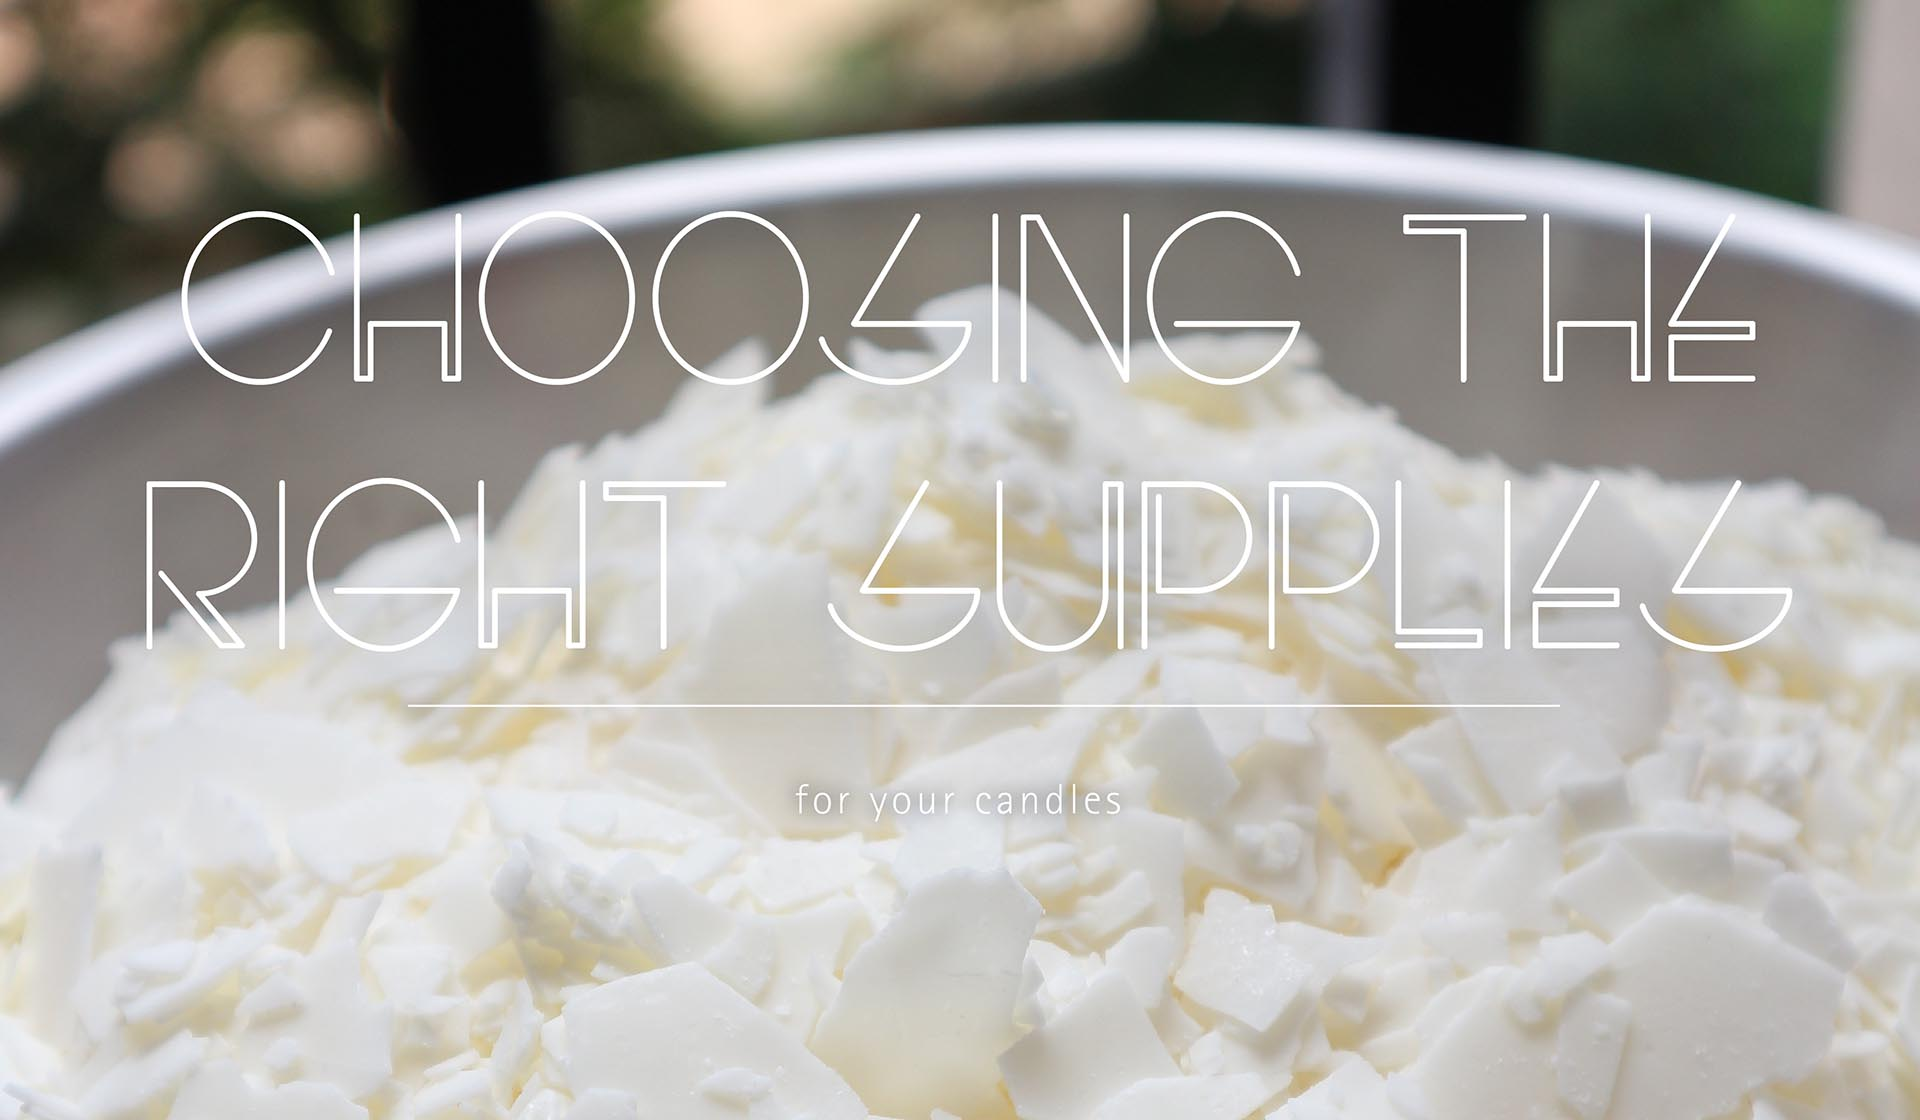 CHOOSING THE RIGHT SUPPLIES FOR YOUR CANDLES